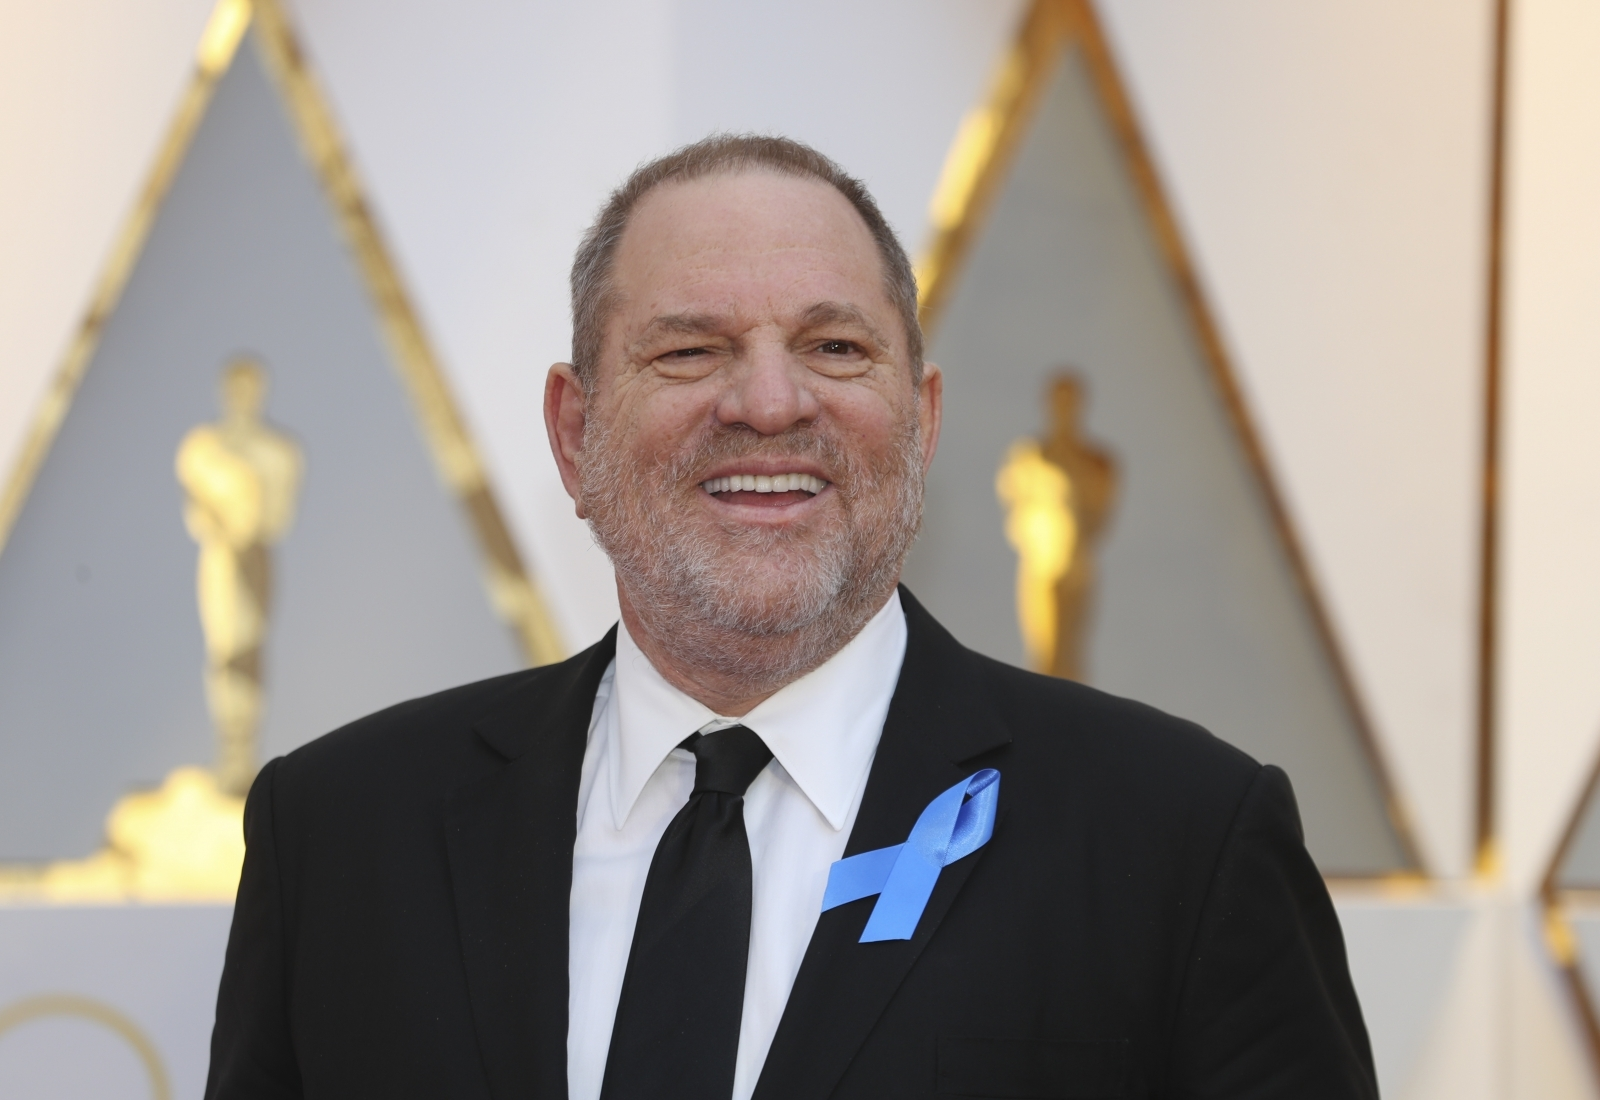 Harvey Weinstein Takes Leave Of Absence Amid Sexual Harassment Claims